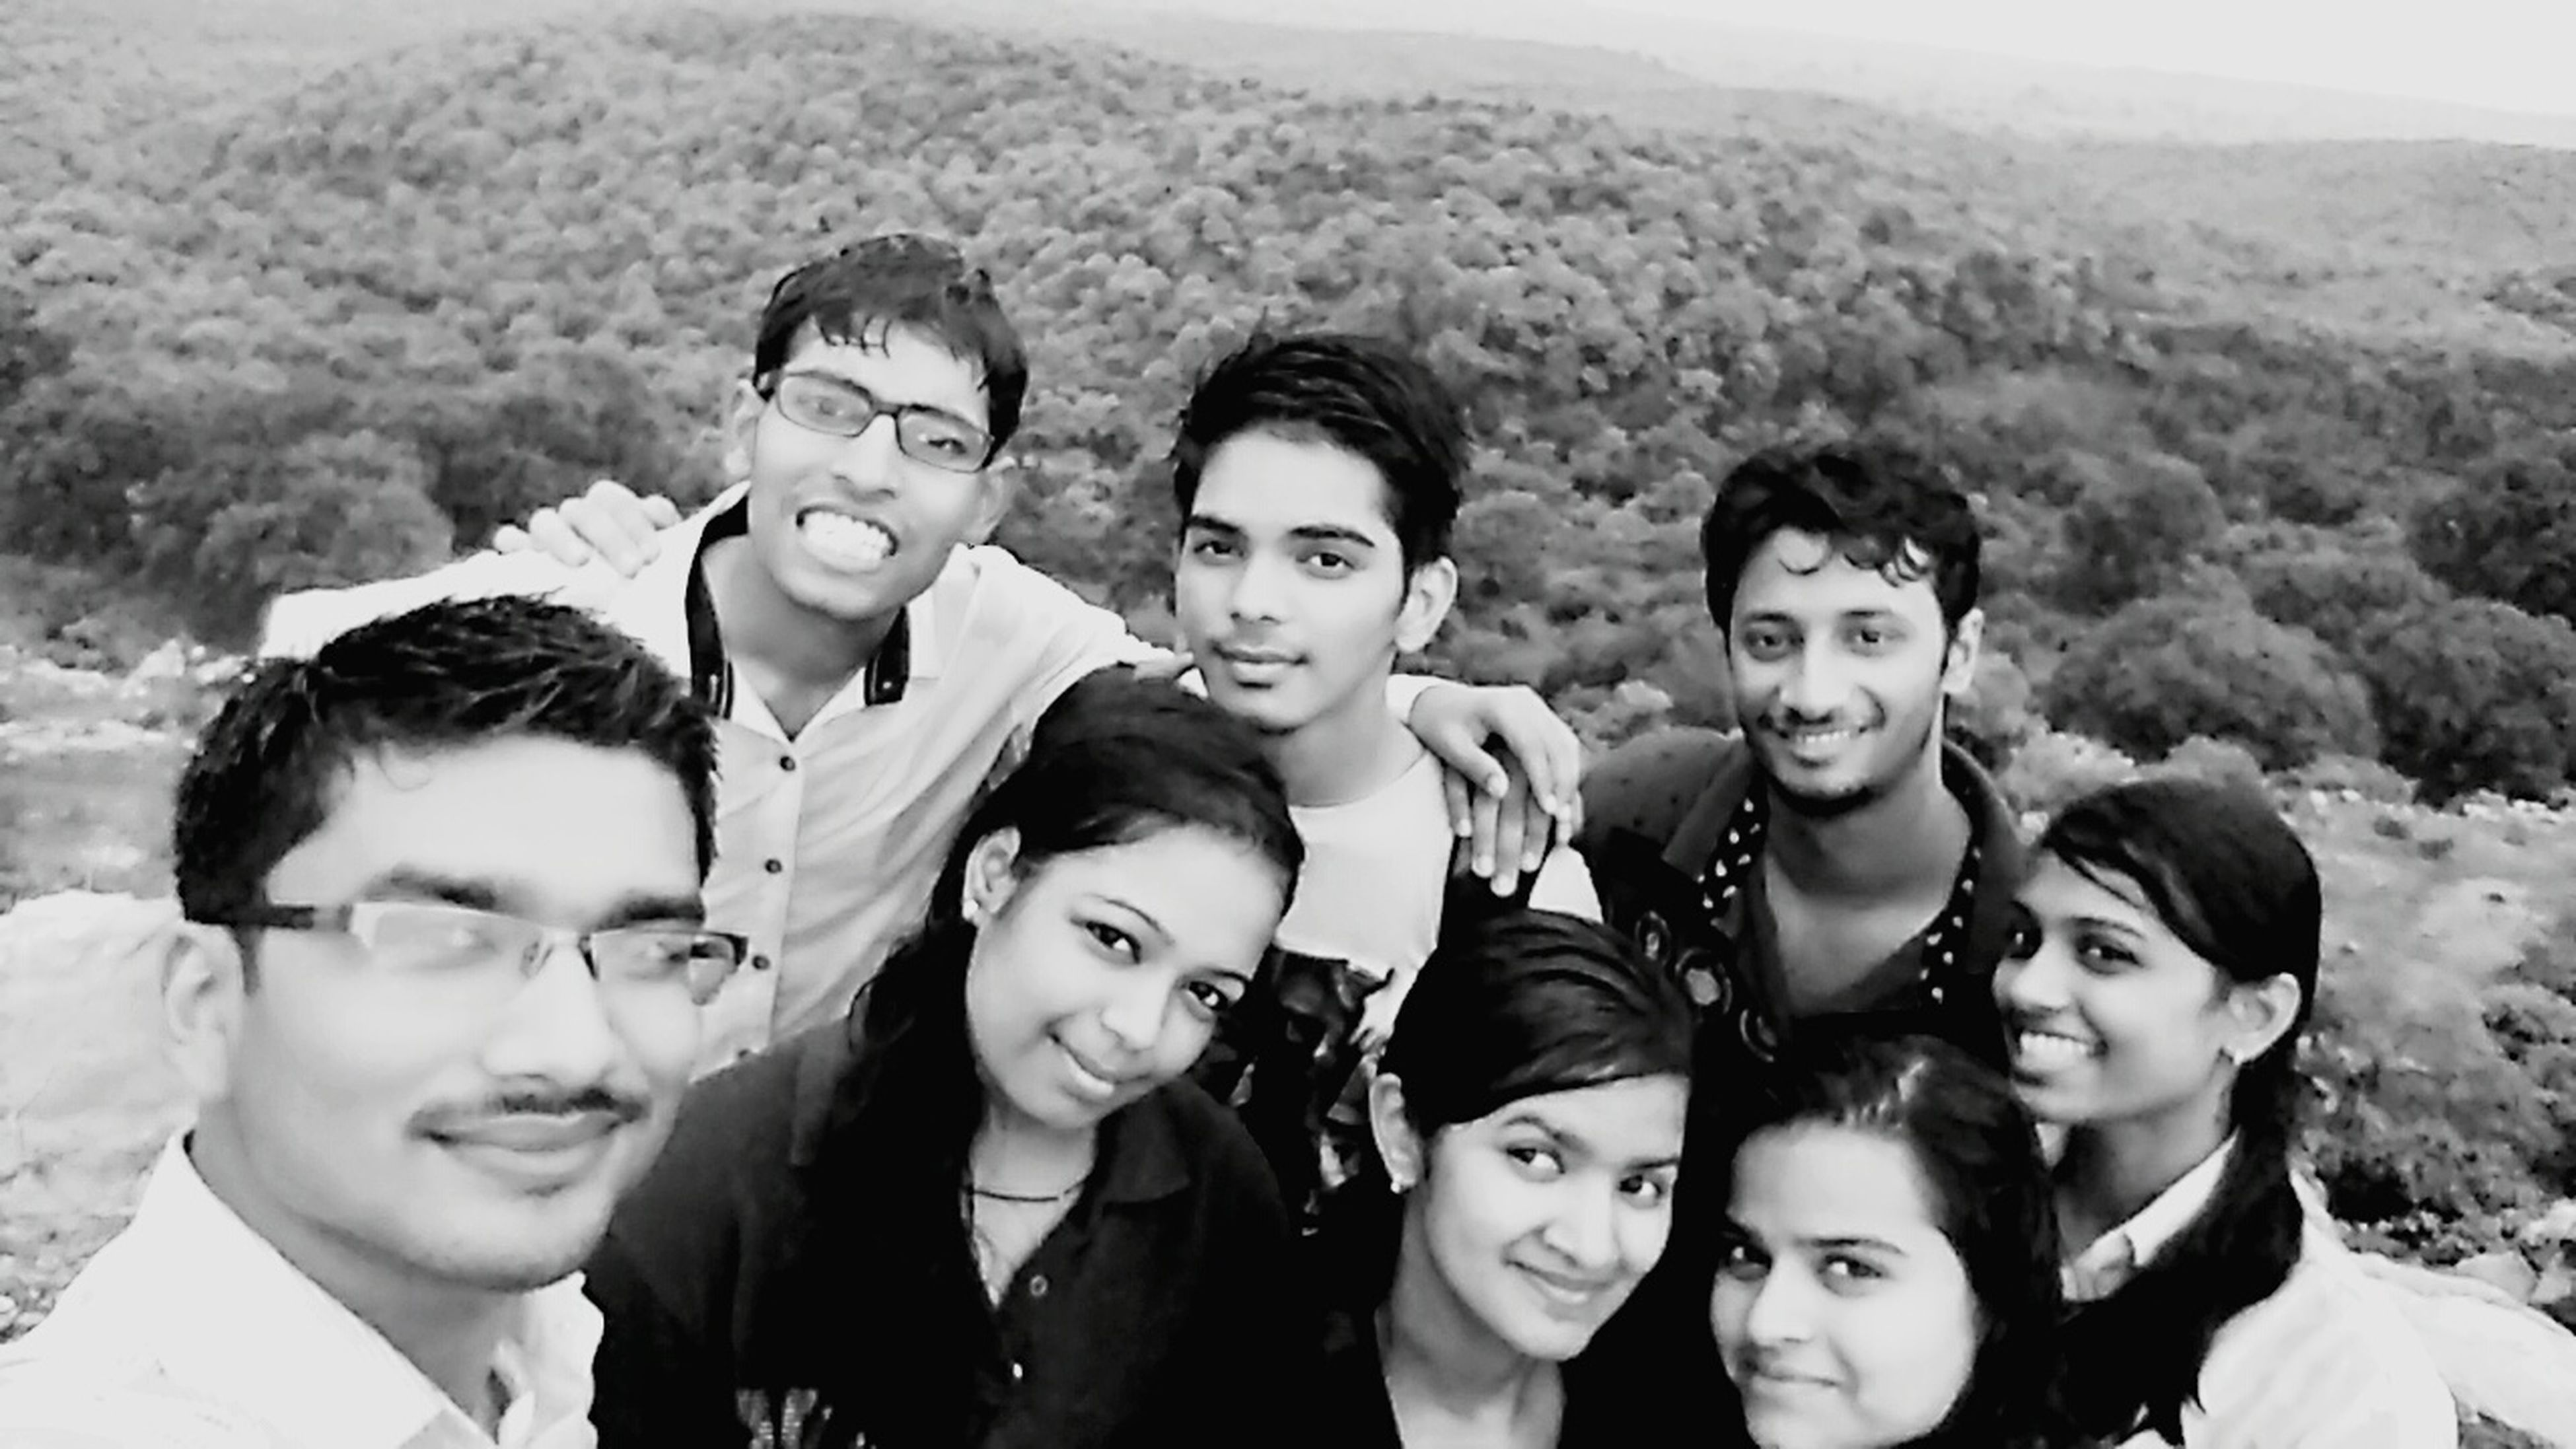 togetherness, bonding, lifestyles, love, leisure activity, person, happiness, smiling, friendship, family, portrait, looking at camera, sibling, front view, casual clothing, sister, brother, young men